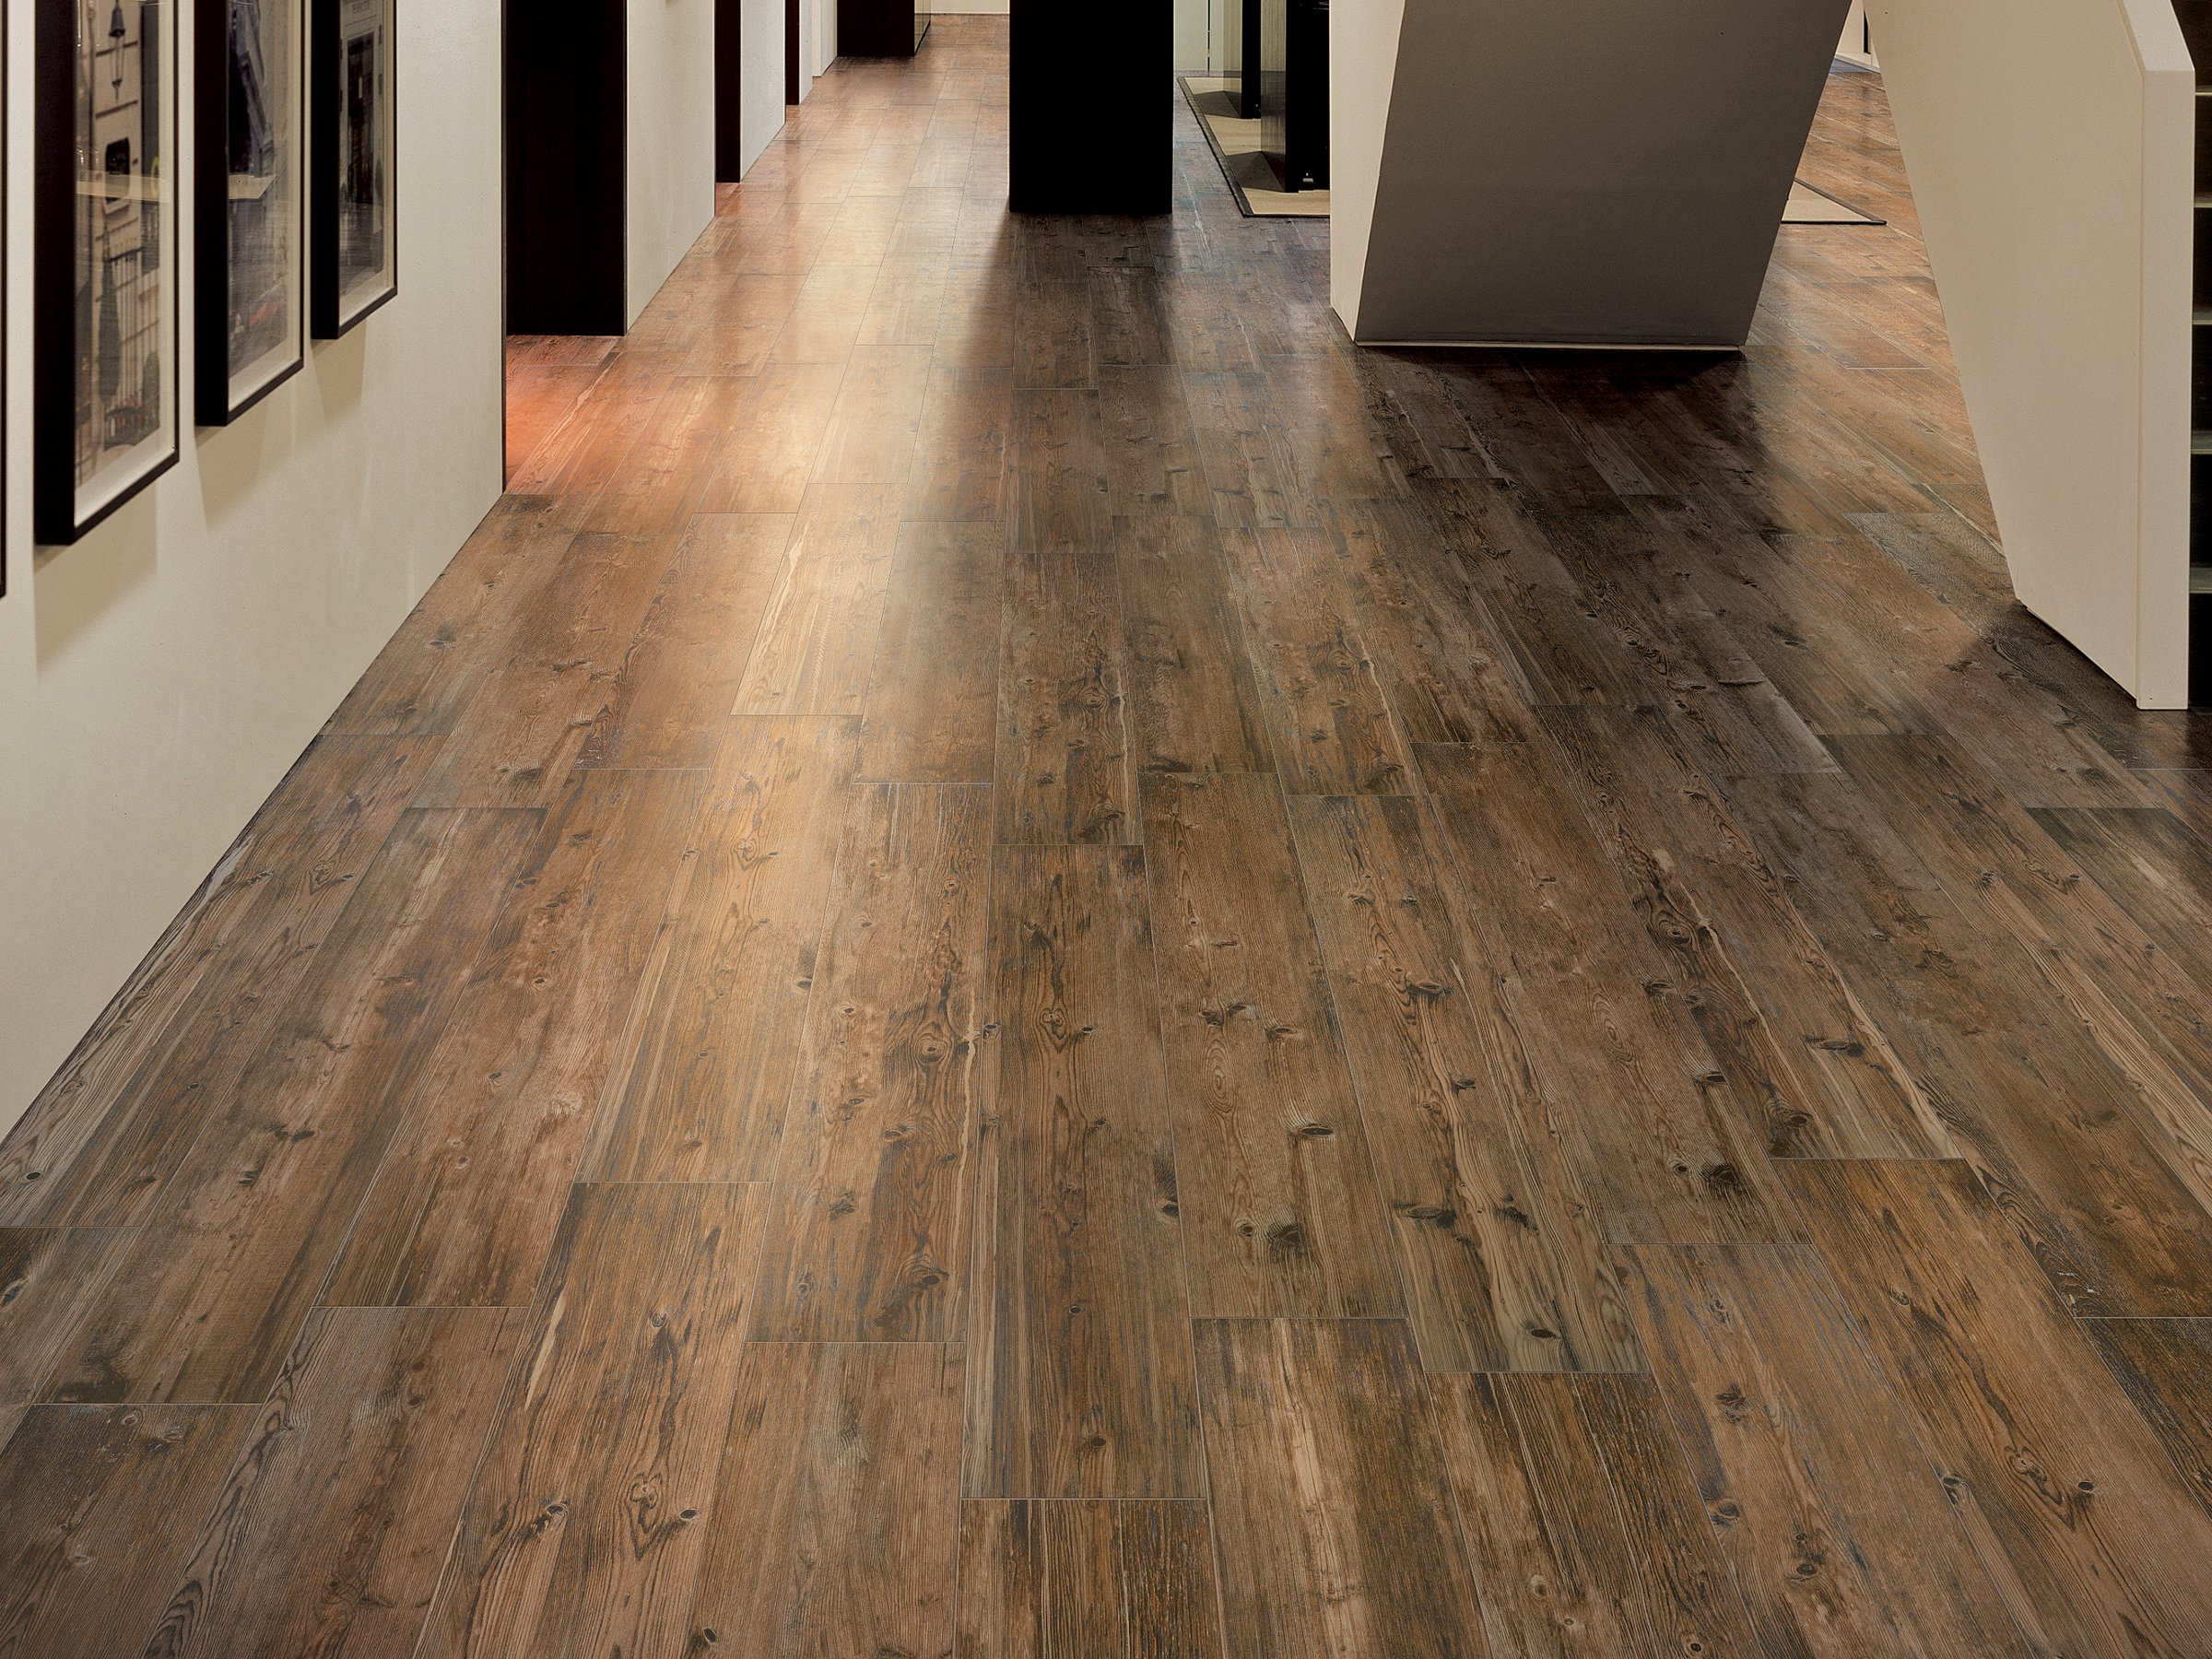 Porcelain stoneware flooring with wood effect larix by for Wooden floor tiles